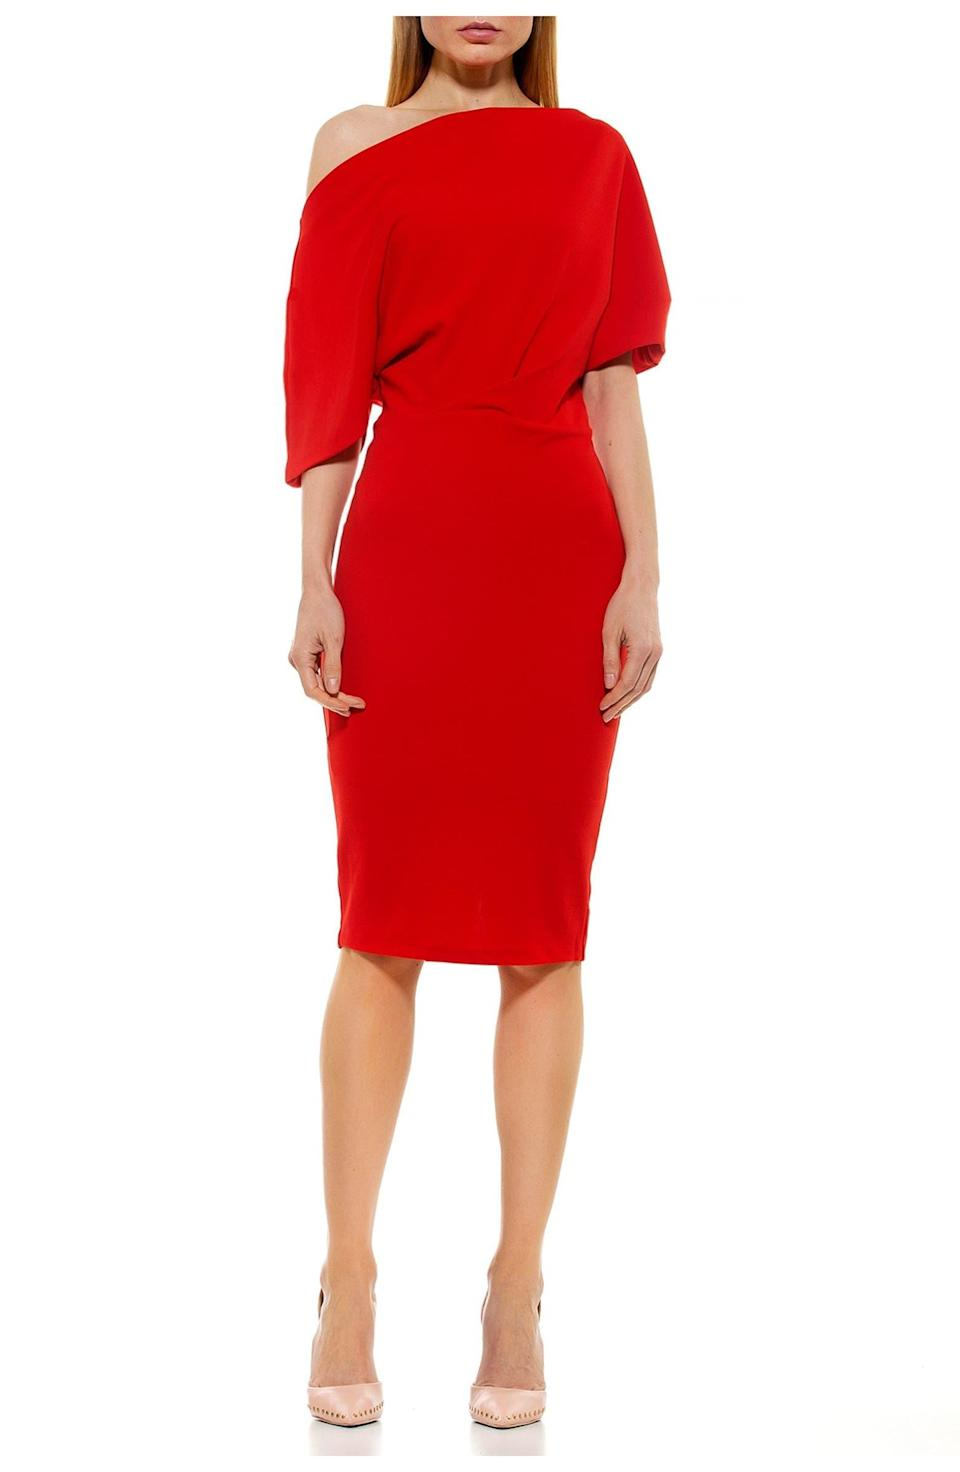 """<h2>Alexia Admor Olivia Draped Sheath Dress</h2><br>Got a wedding (or two) to attend on the horizon and not sure what to wear? Your search stops right here, with this elegant sheath dress featuring an ultra-glam off-the-shoulder silhouette and hundreds of happy reviews.<br><br><strong>The Hype:</strong> 4.2 out of 5 stars; 358 reviews on NordstromRack.com<br><br><strong>What They're Saying:</strong> """"Dress is awesome, it draped the shoulder perfectly. It hugs your curves so if you want a loose dress this may not be what you want. Color was perfect. Nice feeling material."""" — cjordana, NordstromRack.com reviewer<br><br><strong>Alexia Admor</strong> Olivia Draped Off-the-Shoulder Sheath Dress, $, available at <a href=""""https://go.skimresources.com/?id=30283X879131&url=https%3A%2F%2Fwww.nordstromrack.com%2Fs%2Falexia-admor-olivia-draped-off-the-shoulder-sheath-dress%2F5979725"""" rel=""""nofollow noopener"""" target=""""_blank"""" data-ylk=""""slk:Nordstrom Rack"""" class=""""link rapid-noclick-resp"""">Nordstrom Rack</a>"""